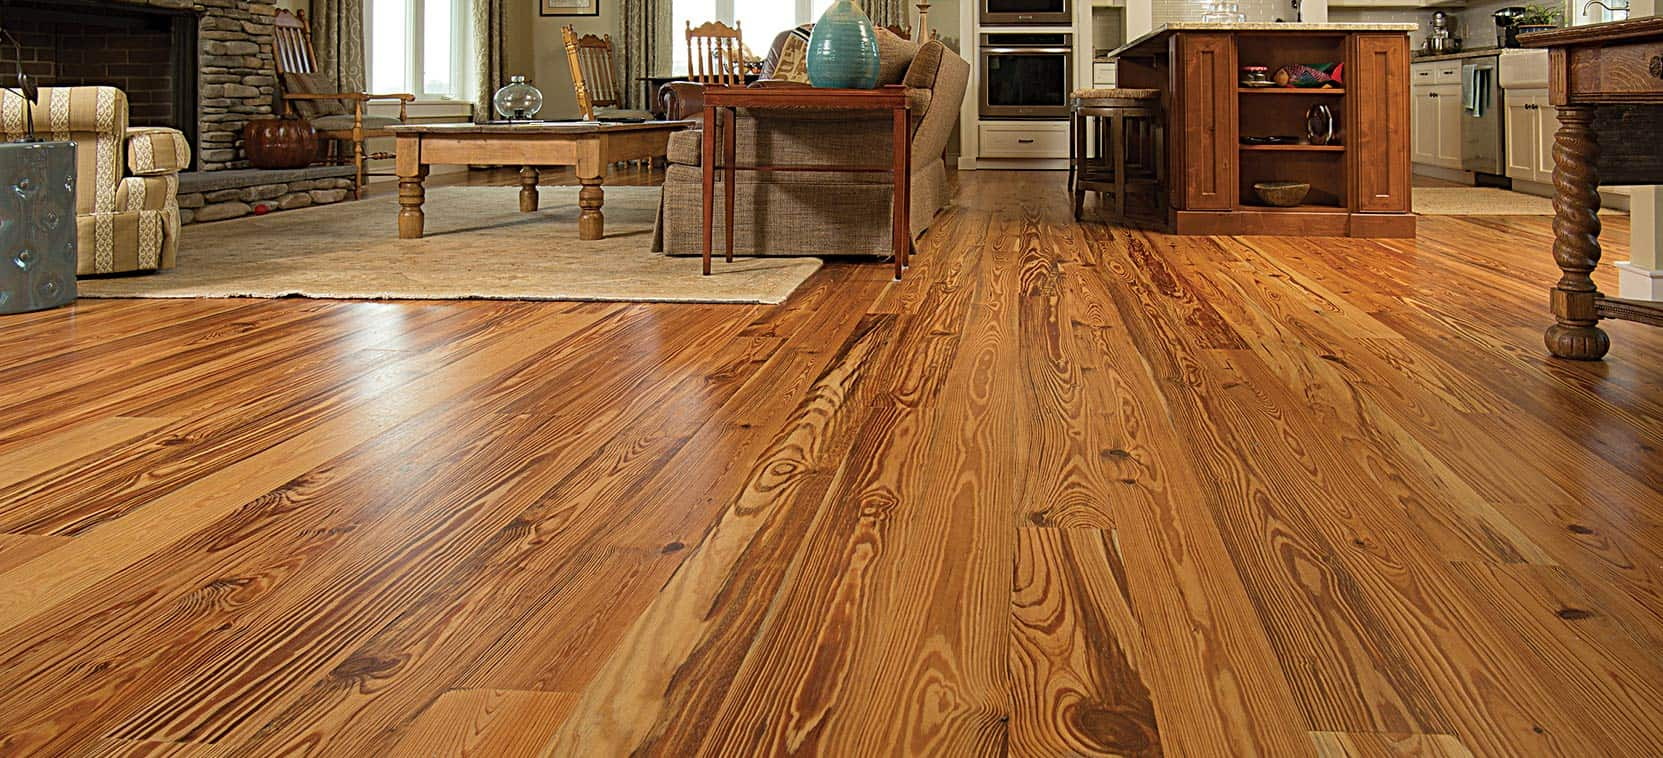 Cypress wood flooring gurus floor for Hardwood floors questions